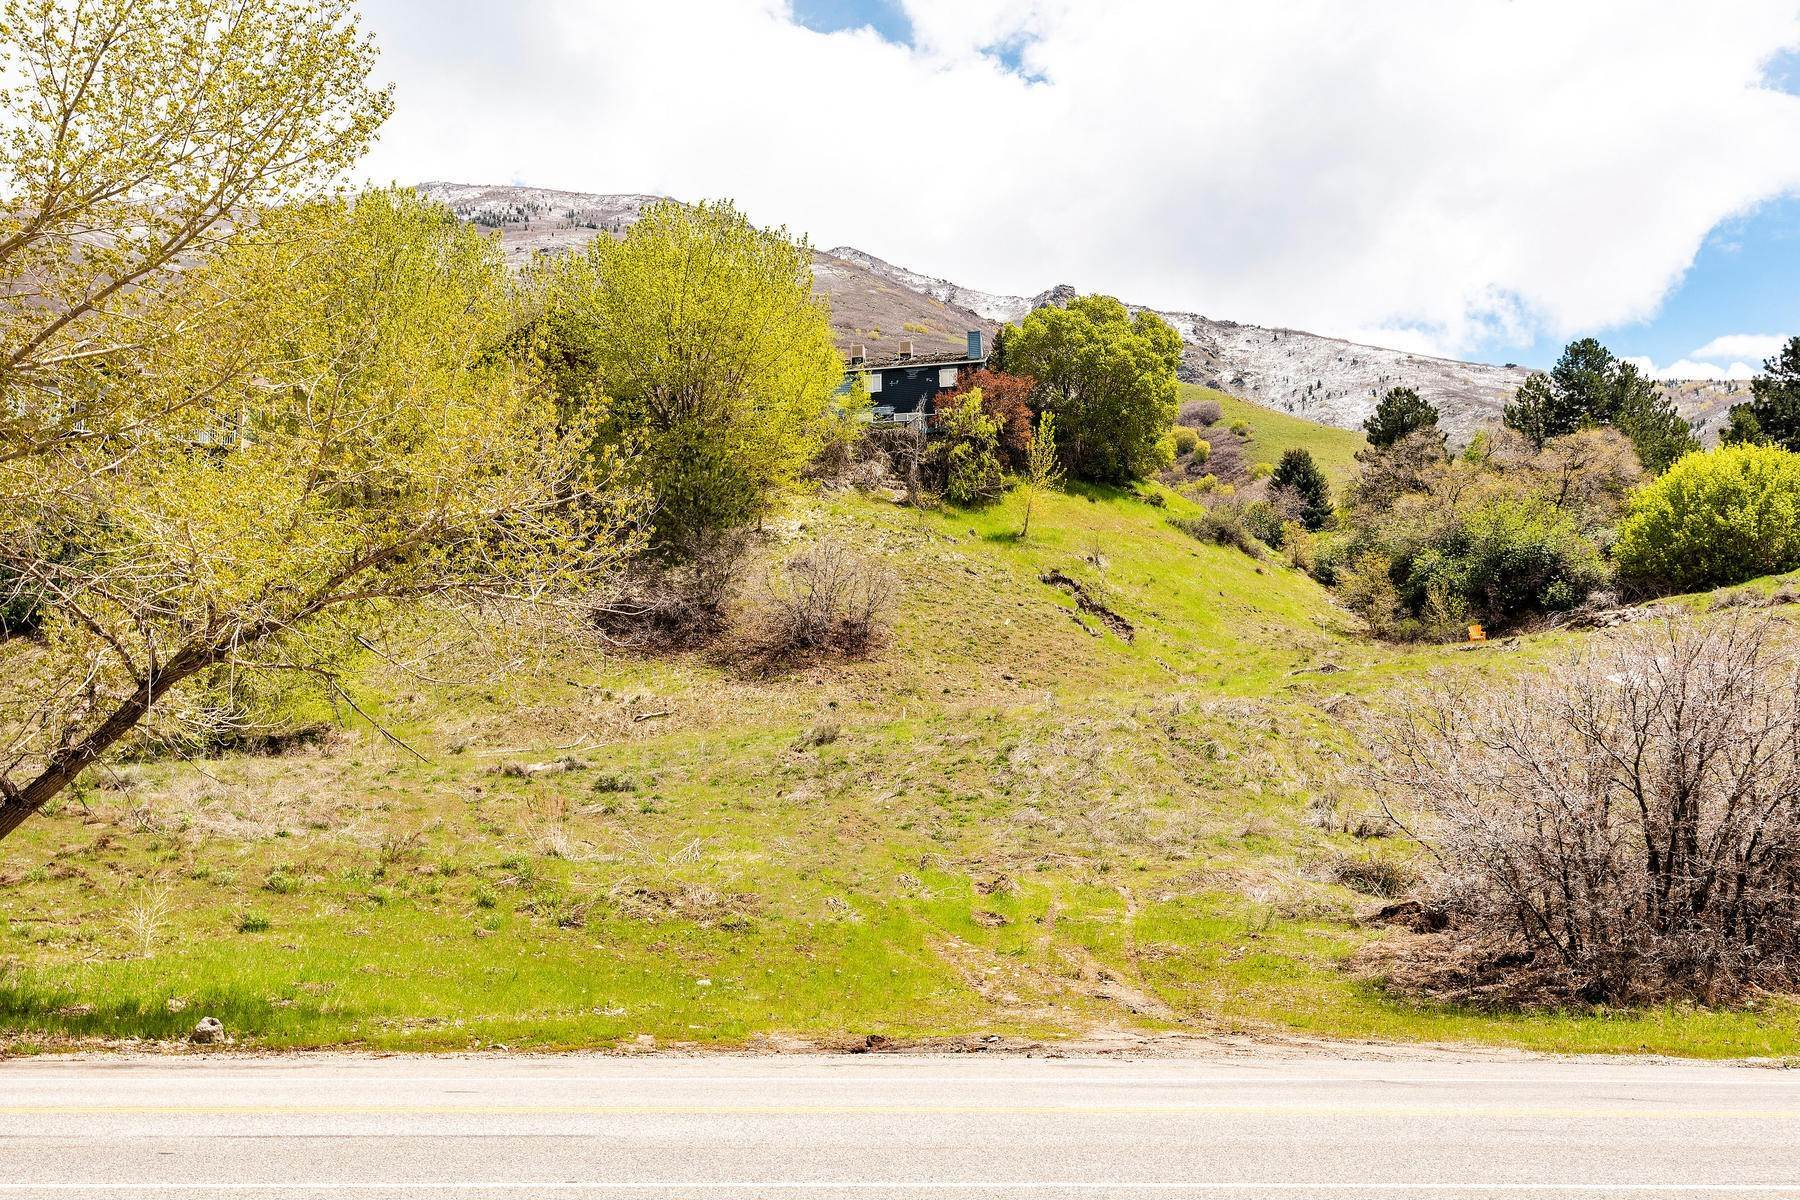 Property for Sale at Beautiful Setting To Build On 7941 S Wasatch Blvd Cottonwood Heights, Utah 84121 United States